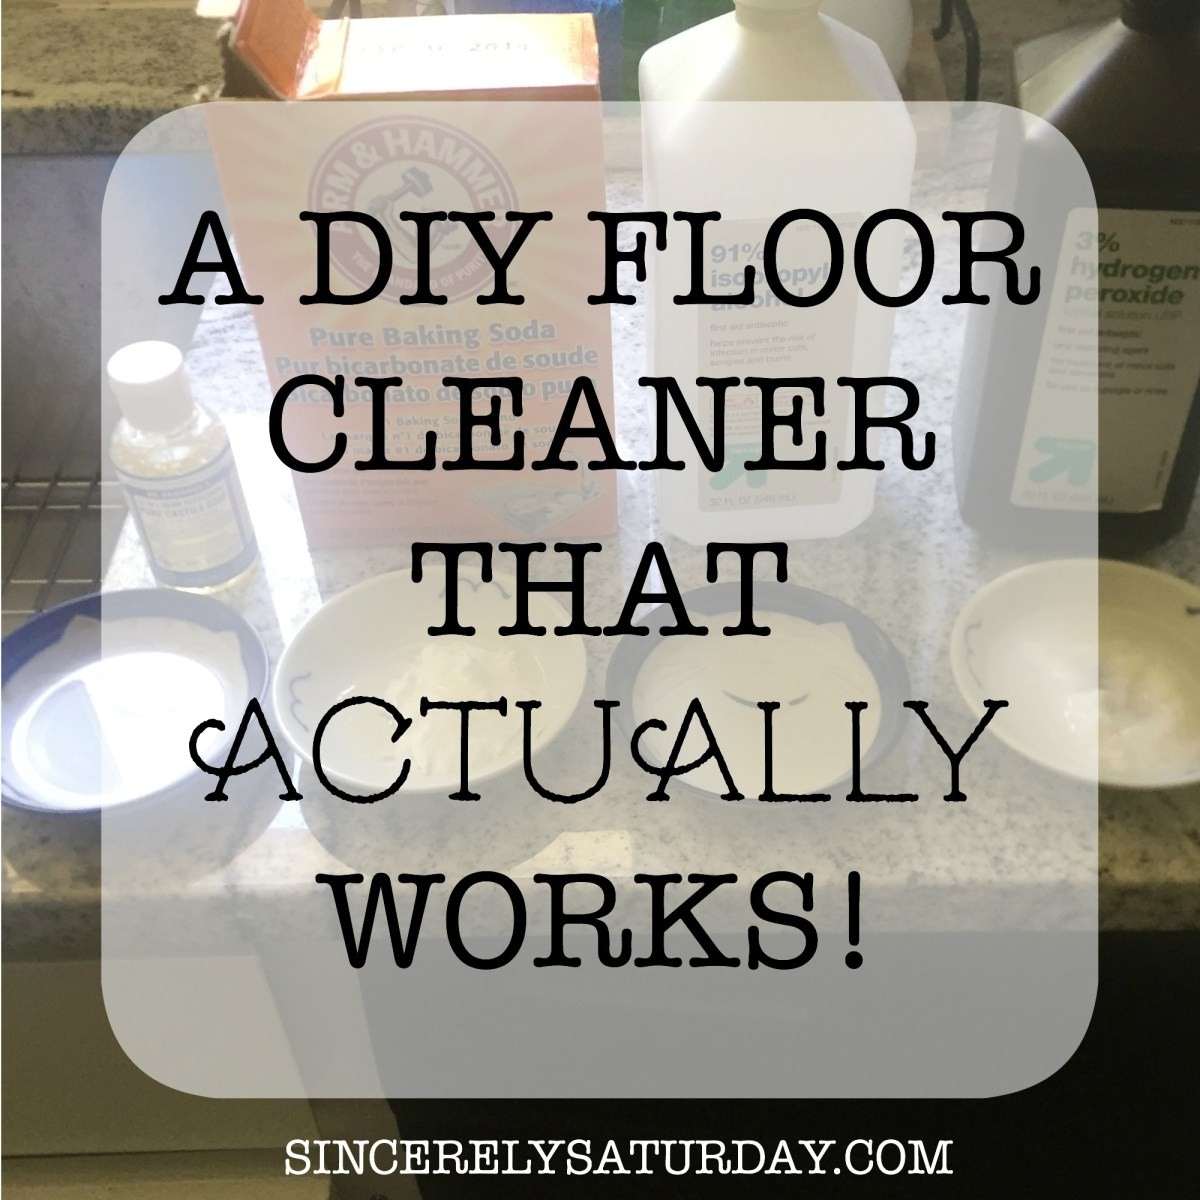 A DIY FLOOR CLEANER THAT ACTUALLY WORKS!